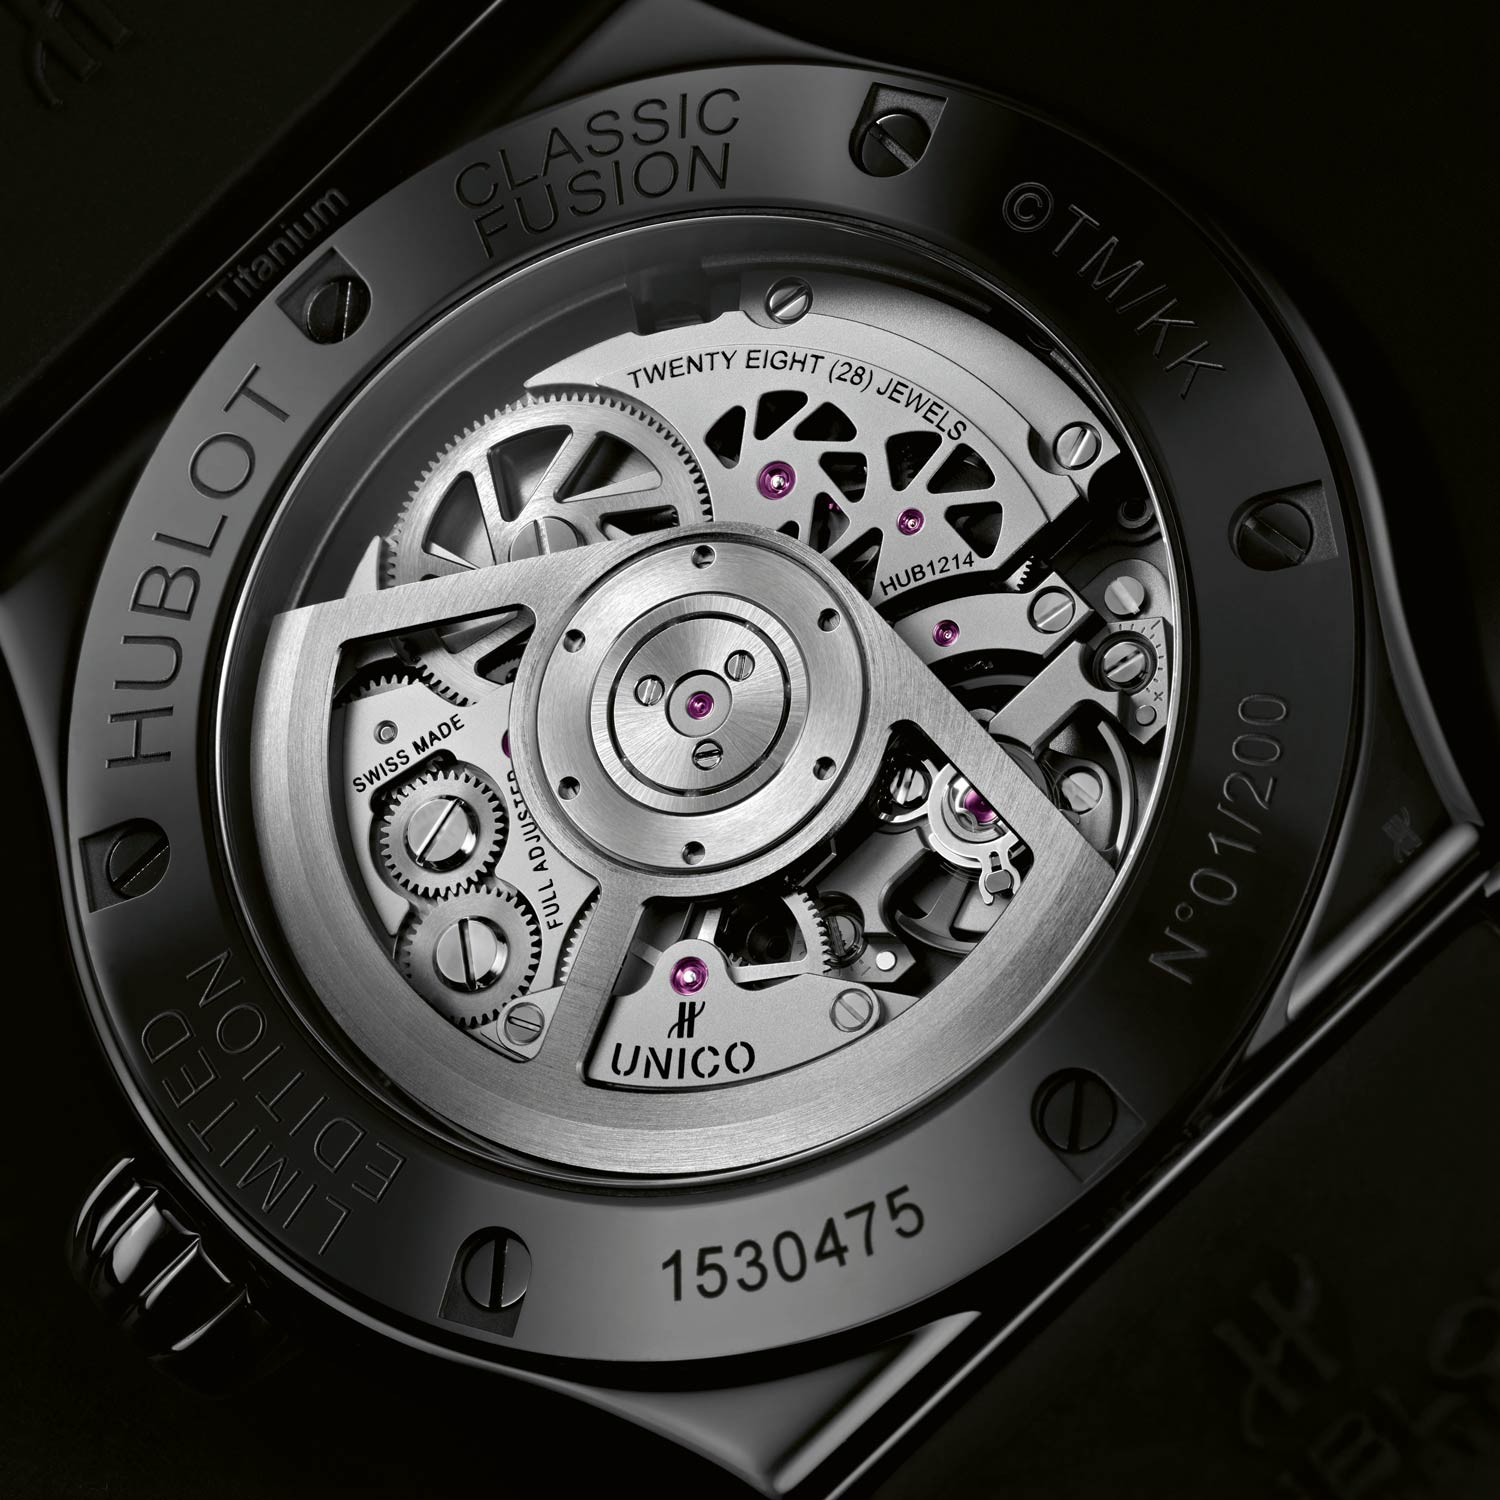 In-house Hublot Unico 1214 automatic movement with 72-hour power reserve